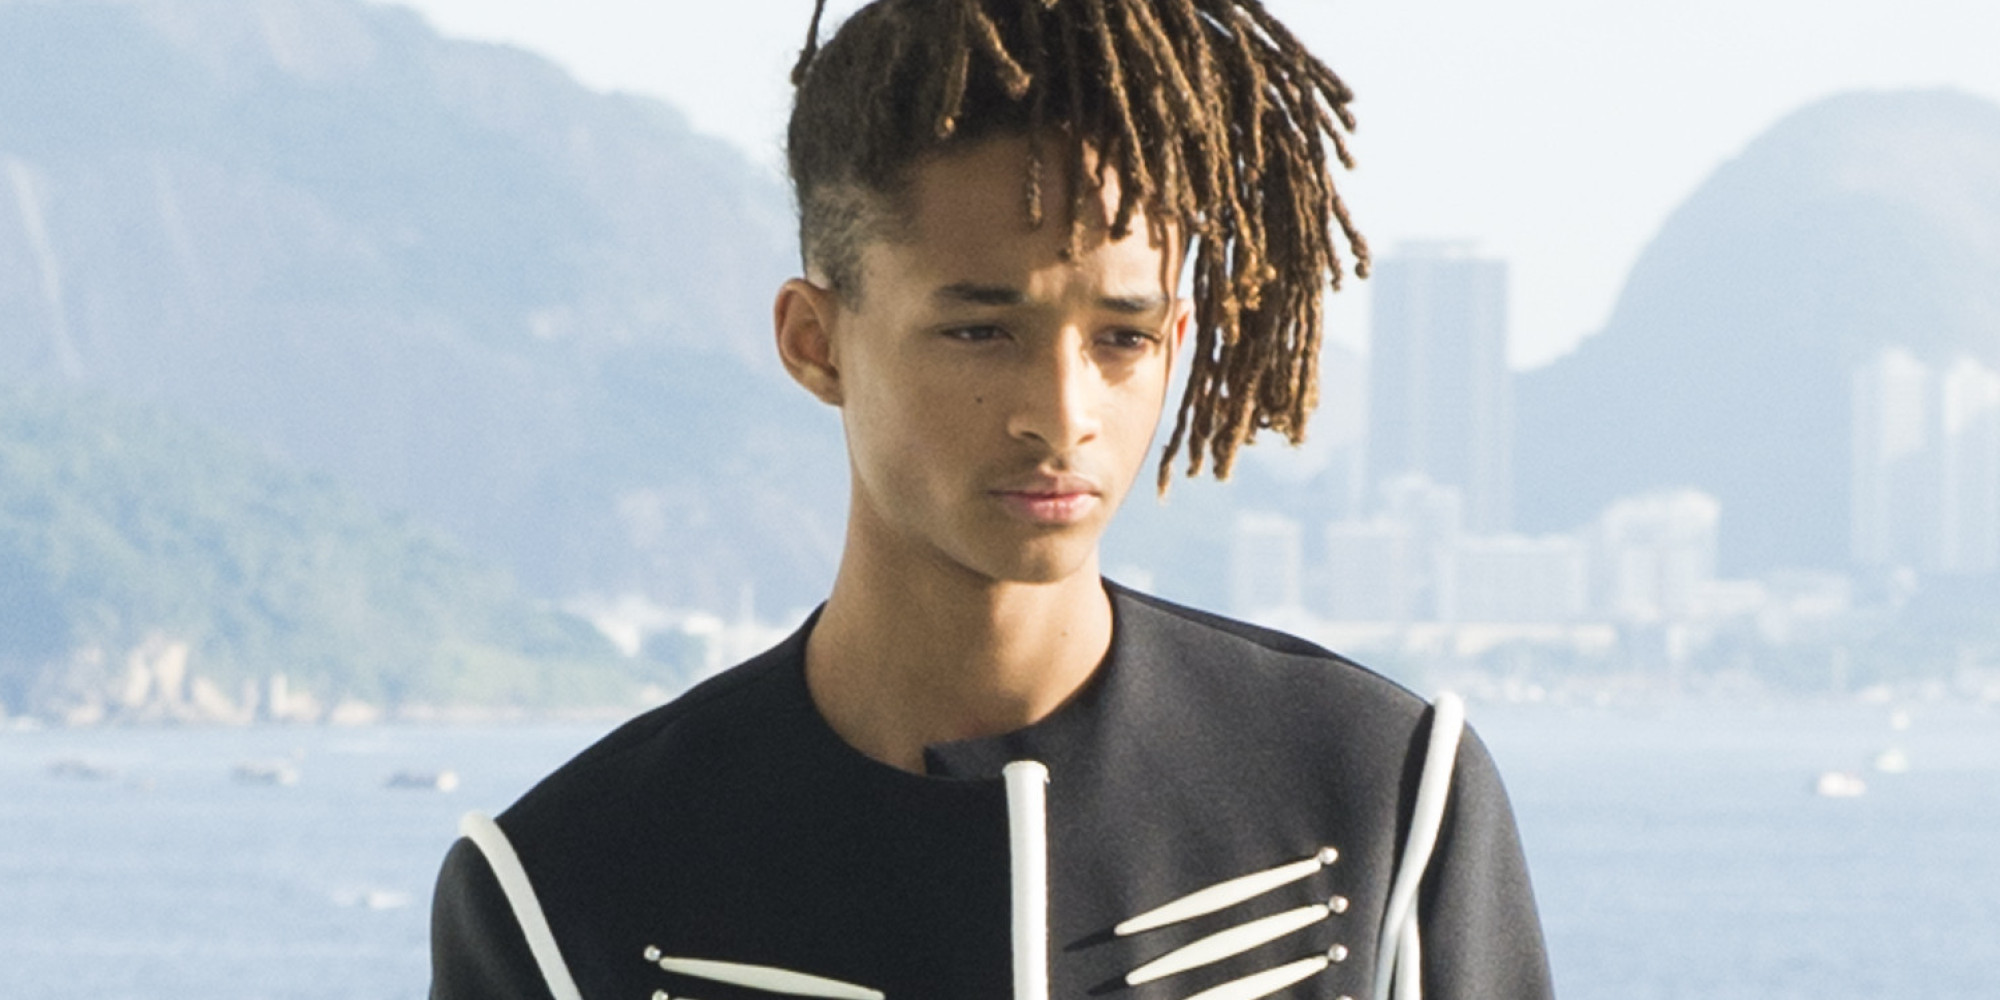 Jaden Smith Wallpapers Images Photos Pictures Backgrounds 2000x1000